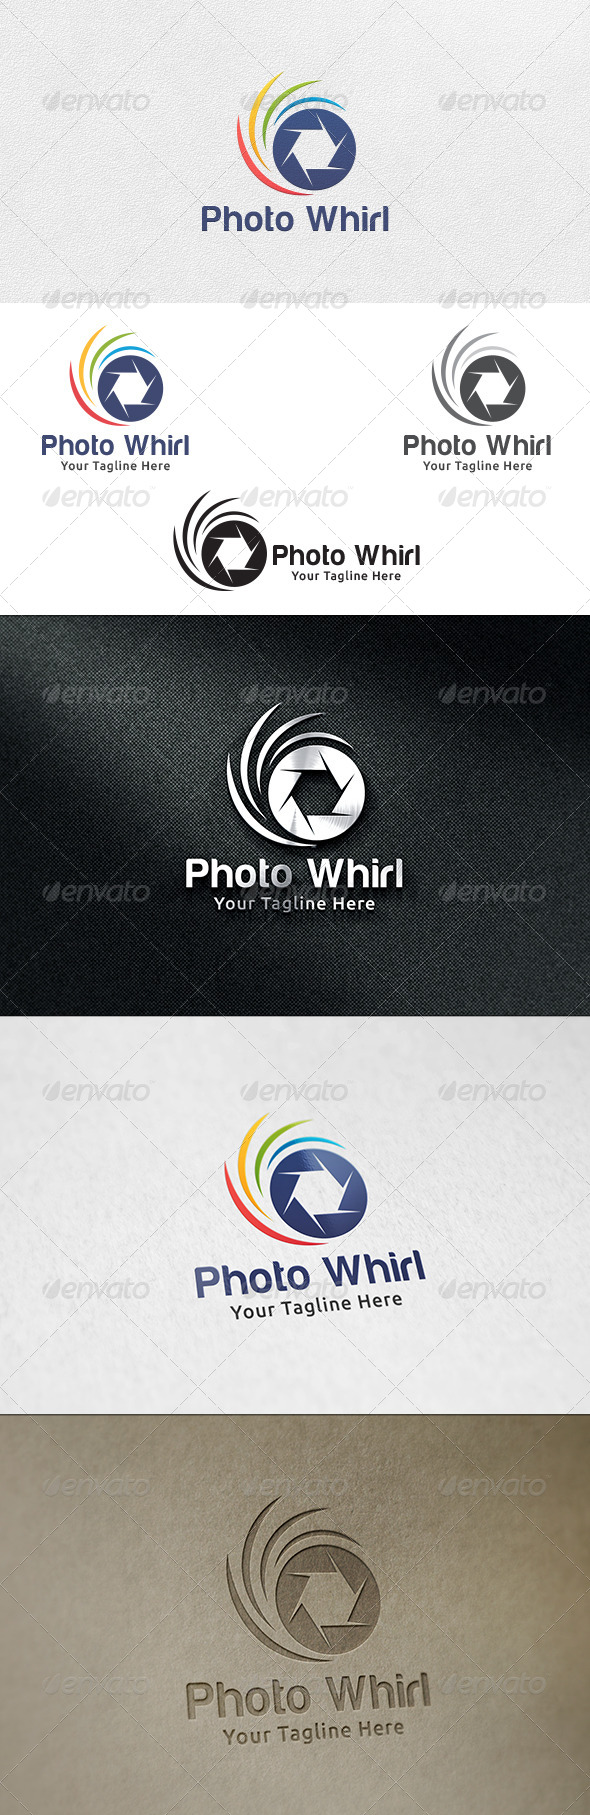 Photo Whirl - Logo Template - Symbols Logo Templates